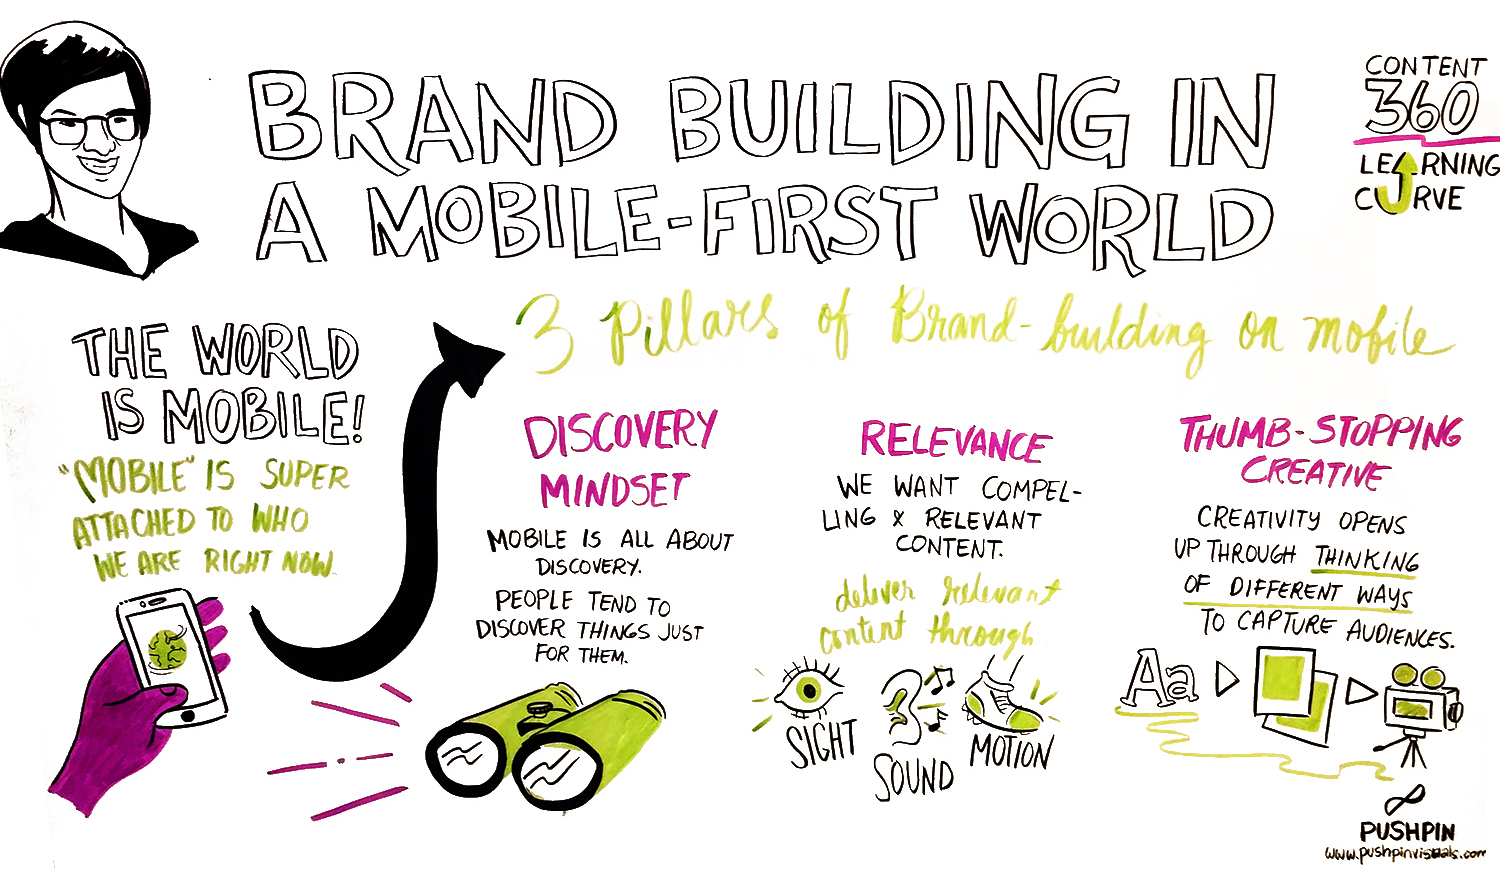 Brand-Building-in-a-Mobile-First-World